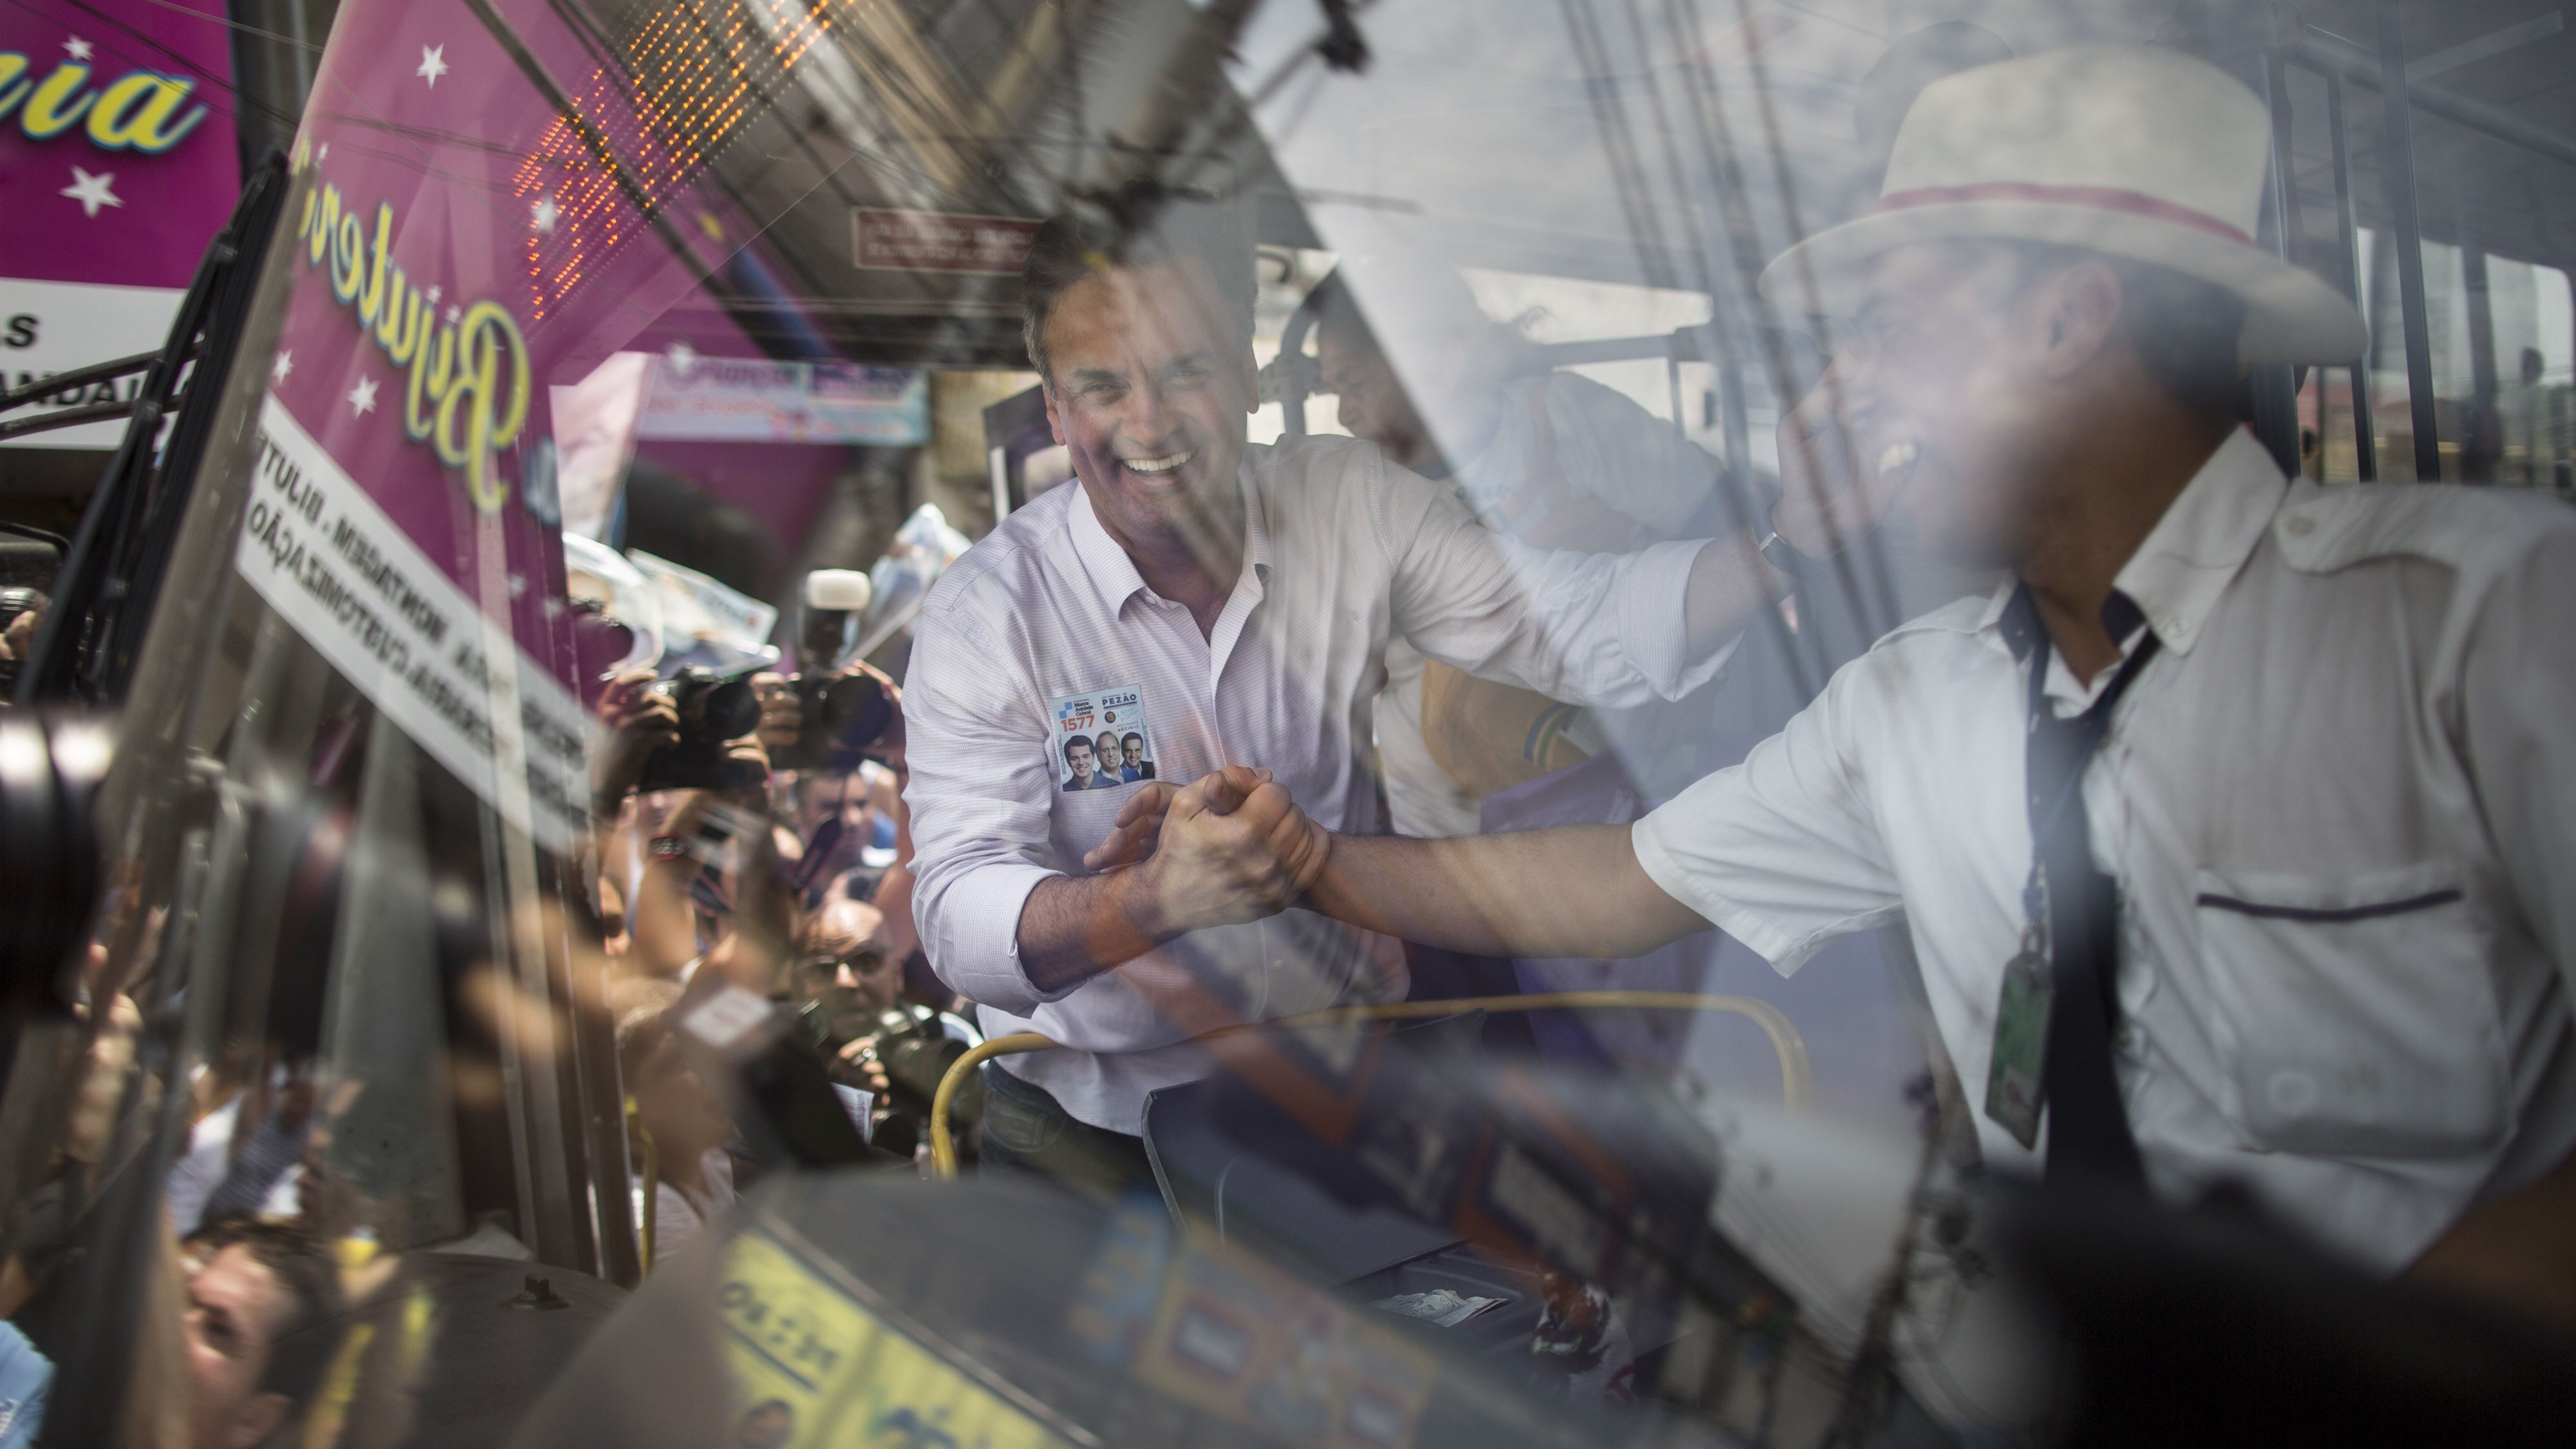 """In this Tuesday, Sept. 30, 2014 photo, Aecio Neves, presidential candidate of the Brazilian Social Democracy Party, PSDB, greets a bus driver outside the """"Mercadao de Madureira,"""" or Madureira Market in Rio de Janeiro, Brazil. Official results showed Sunday that President Dilma Rousseff will face Neves in a second-round vote in Brazil's most unpredictable presidential election since the nation's return to democracy nearly three decades ago. (AP Photo/Felipe Dana)"""